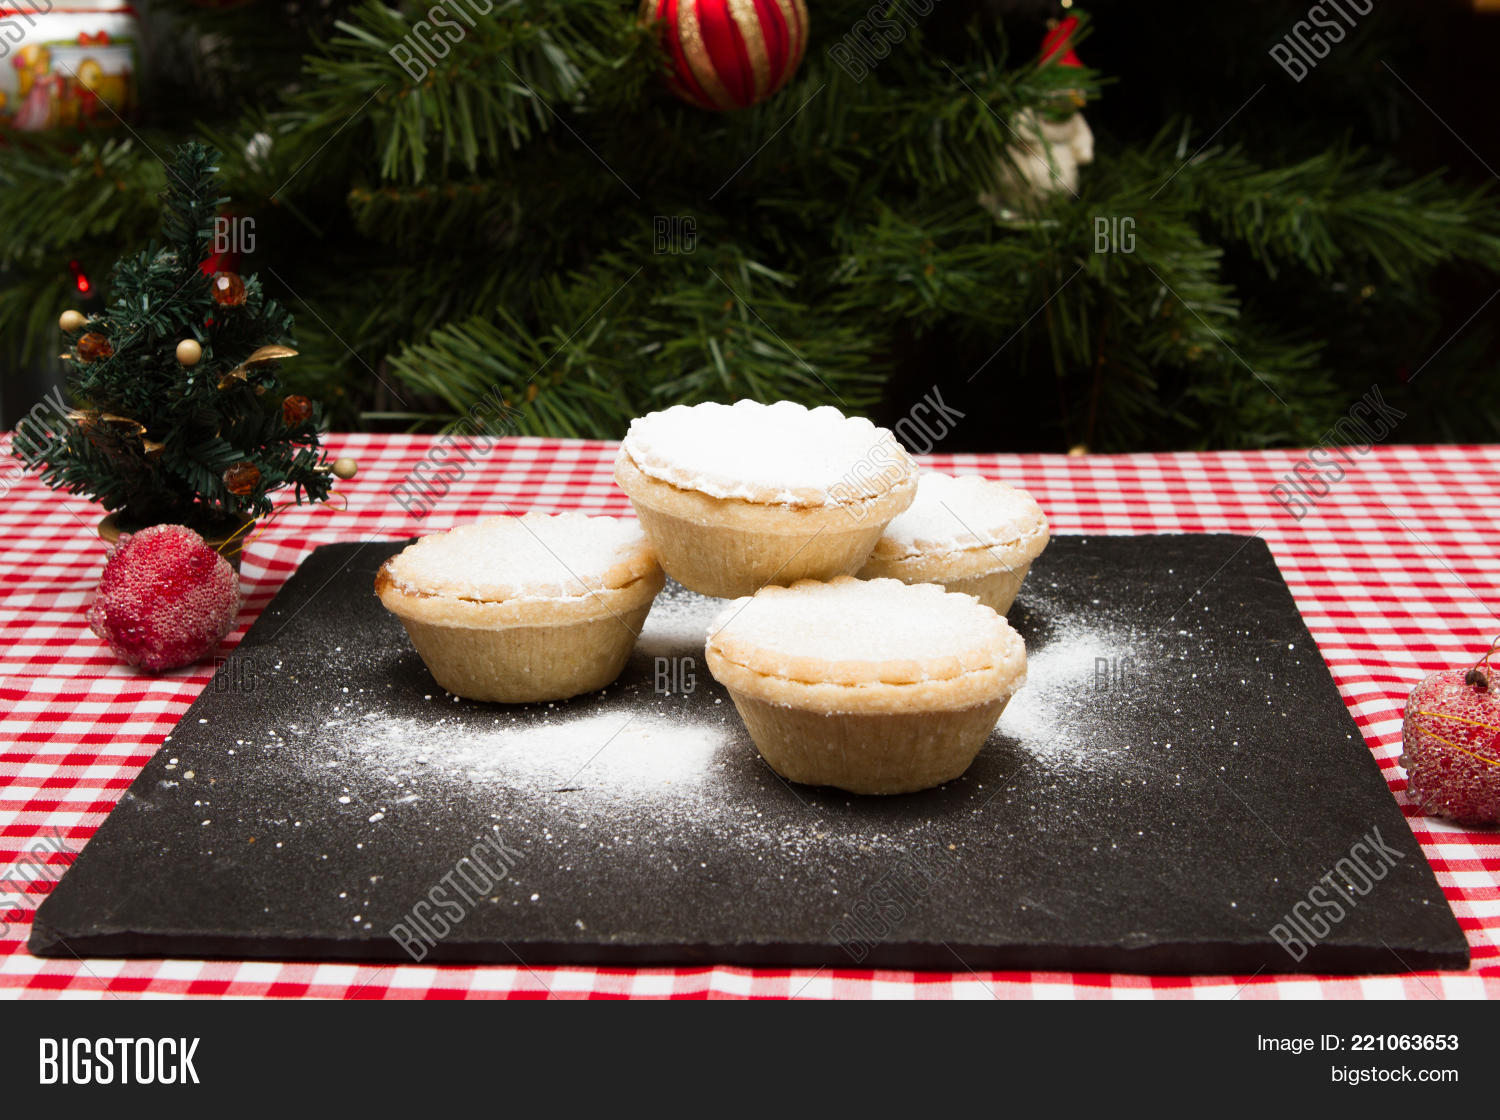 Mince pies Traditional British Christmas treat of mince pies